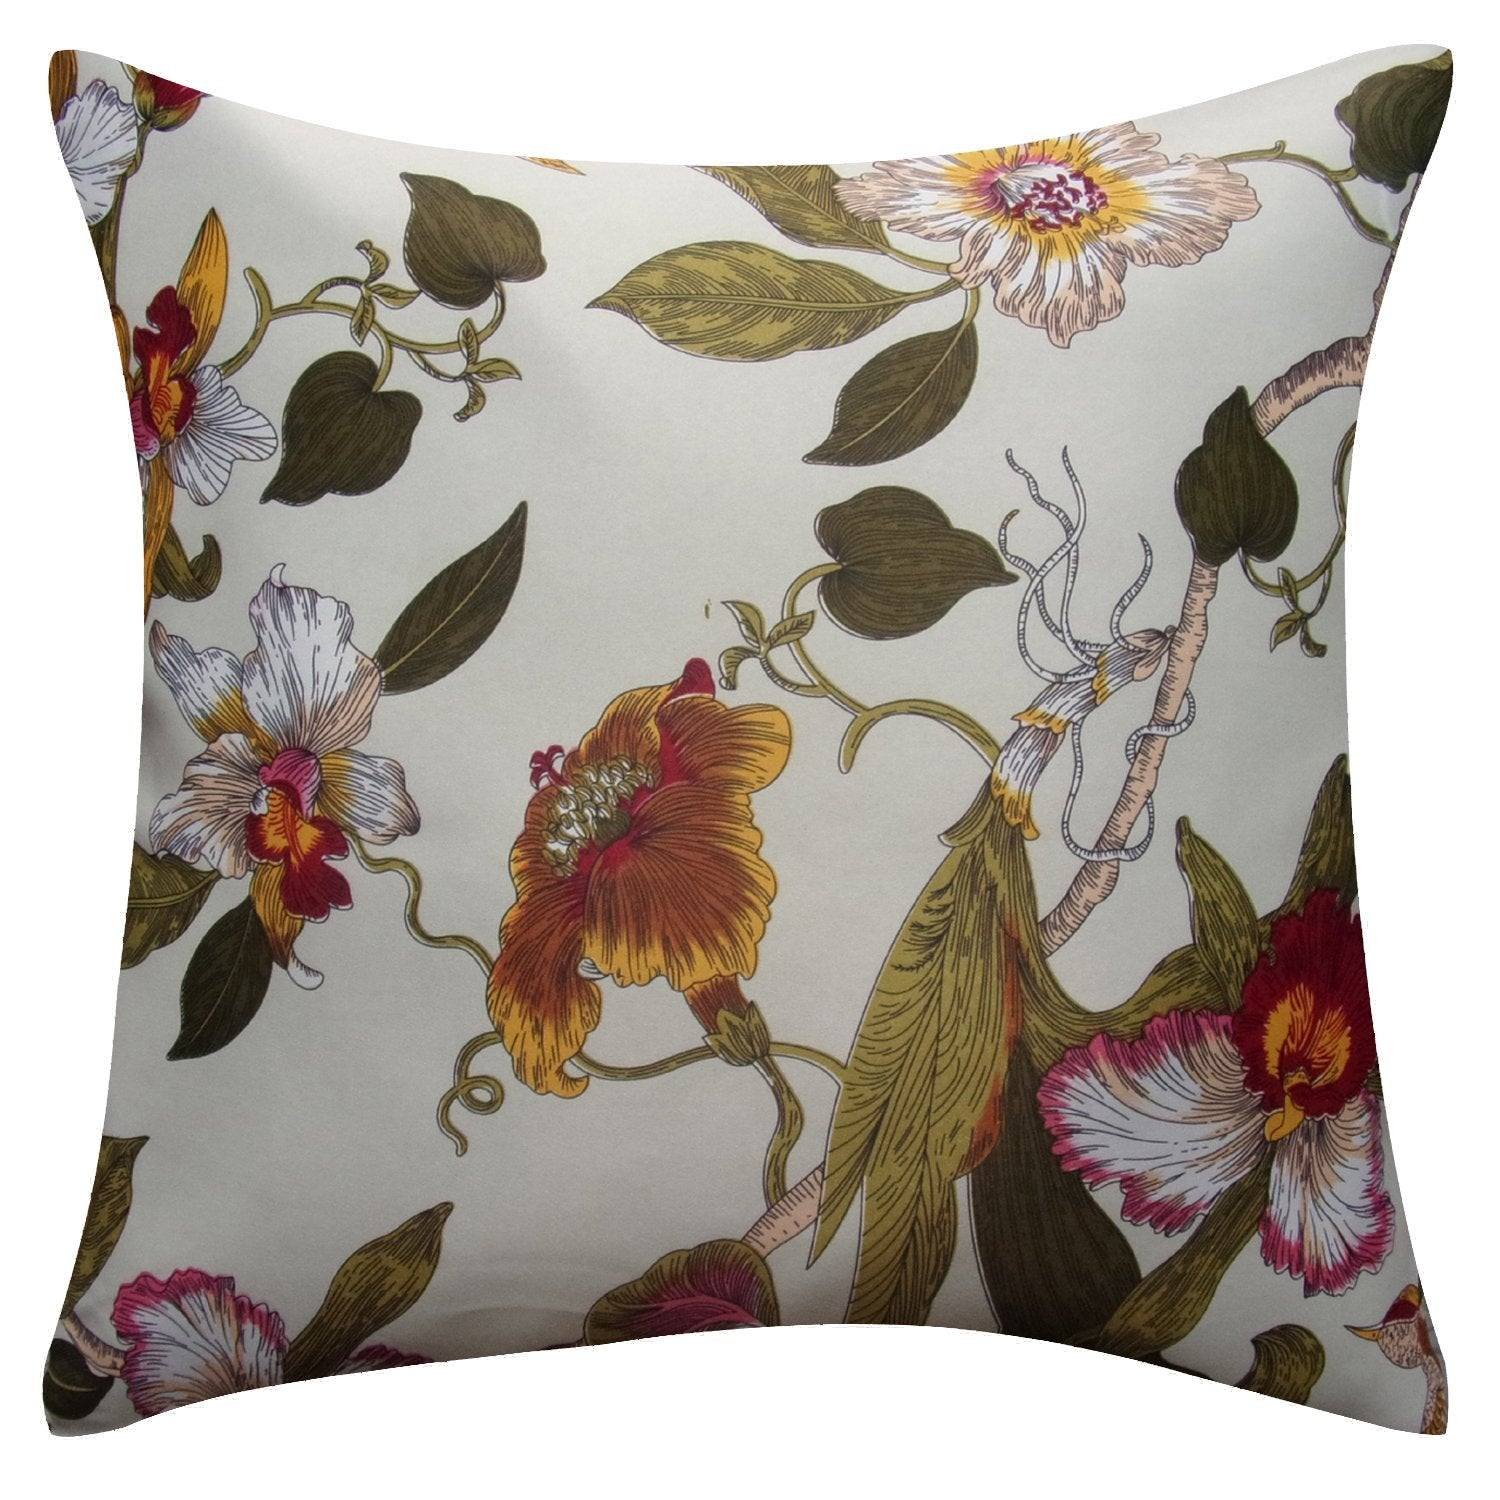 Aandy Top Bird Red Flower Pillow Cover Cases 1 Set Of 2